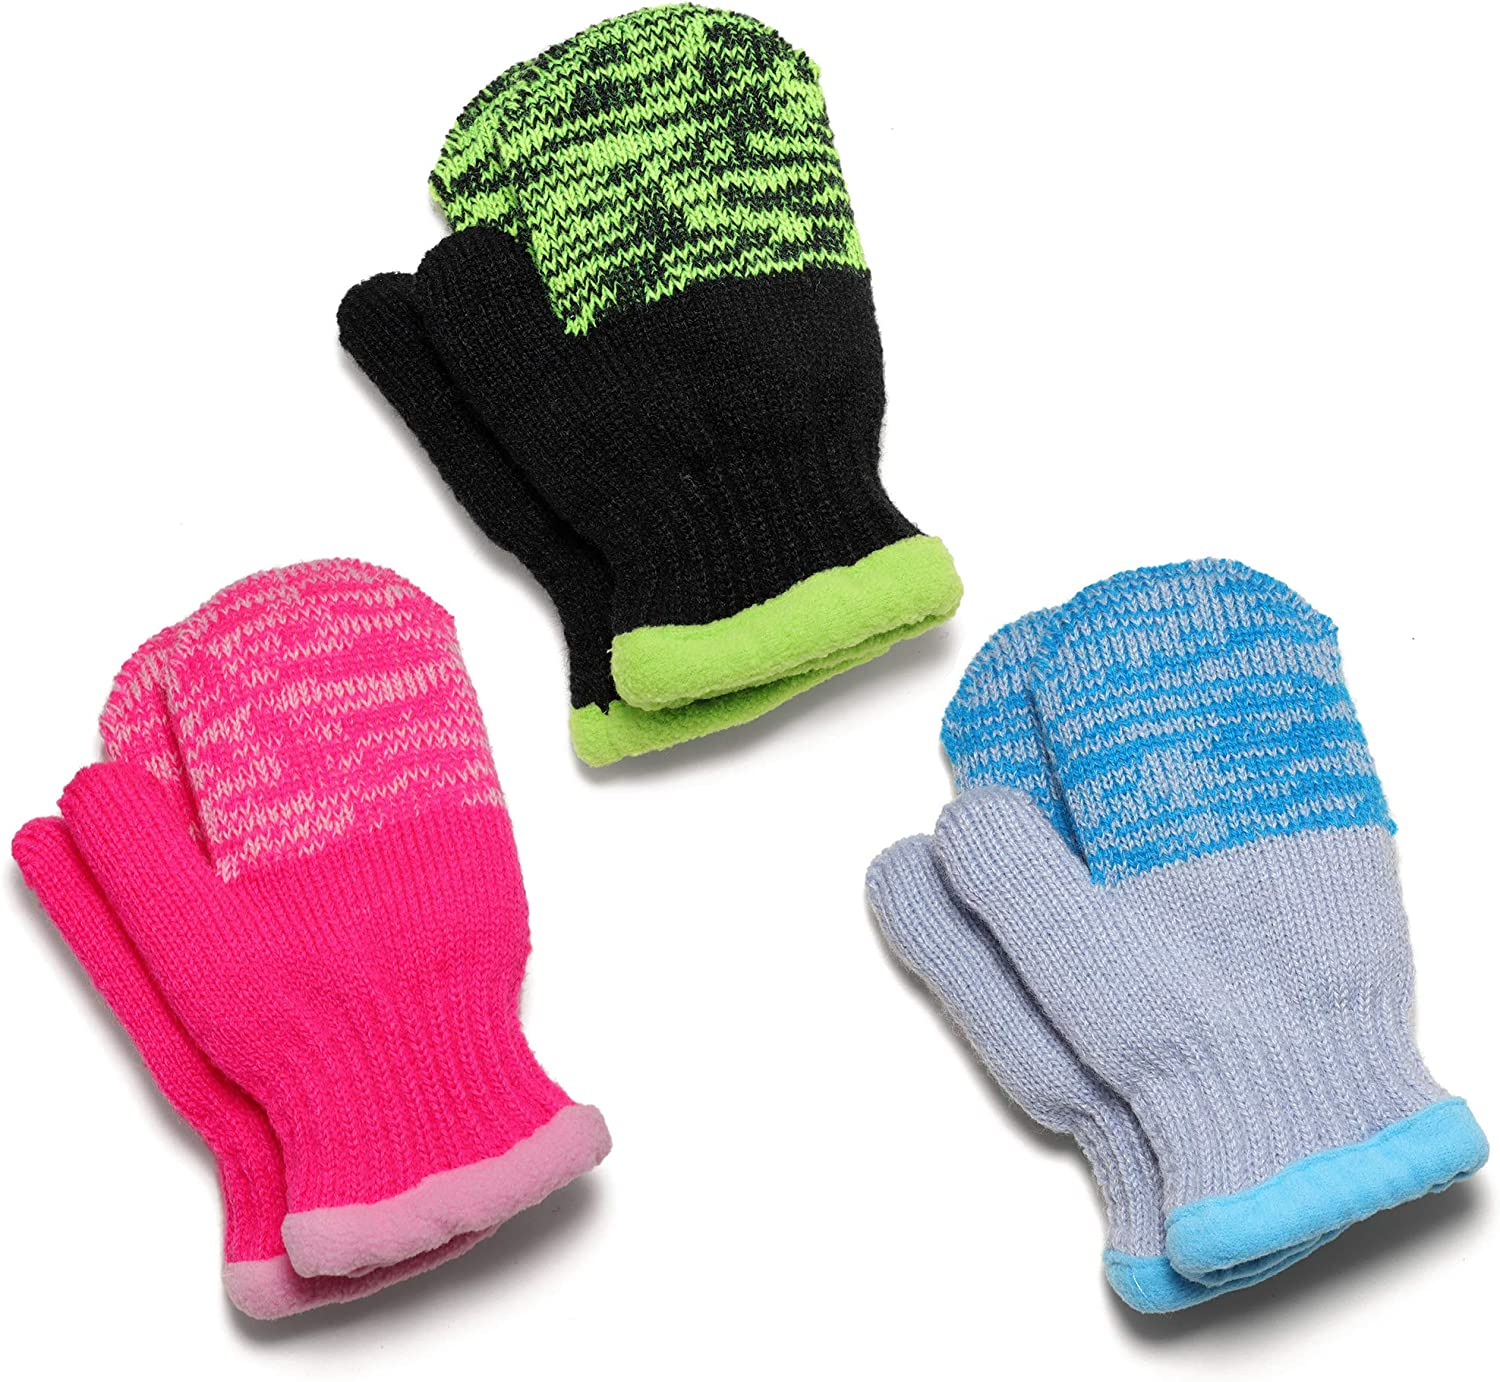 Flammi 3 Pairs Kids Winter Magic Mittens Fleece Lined Knit Warm Gloves Easy On for Boys Girls 2-7 Years